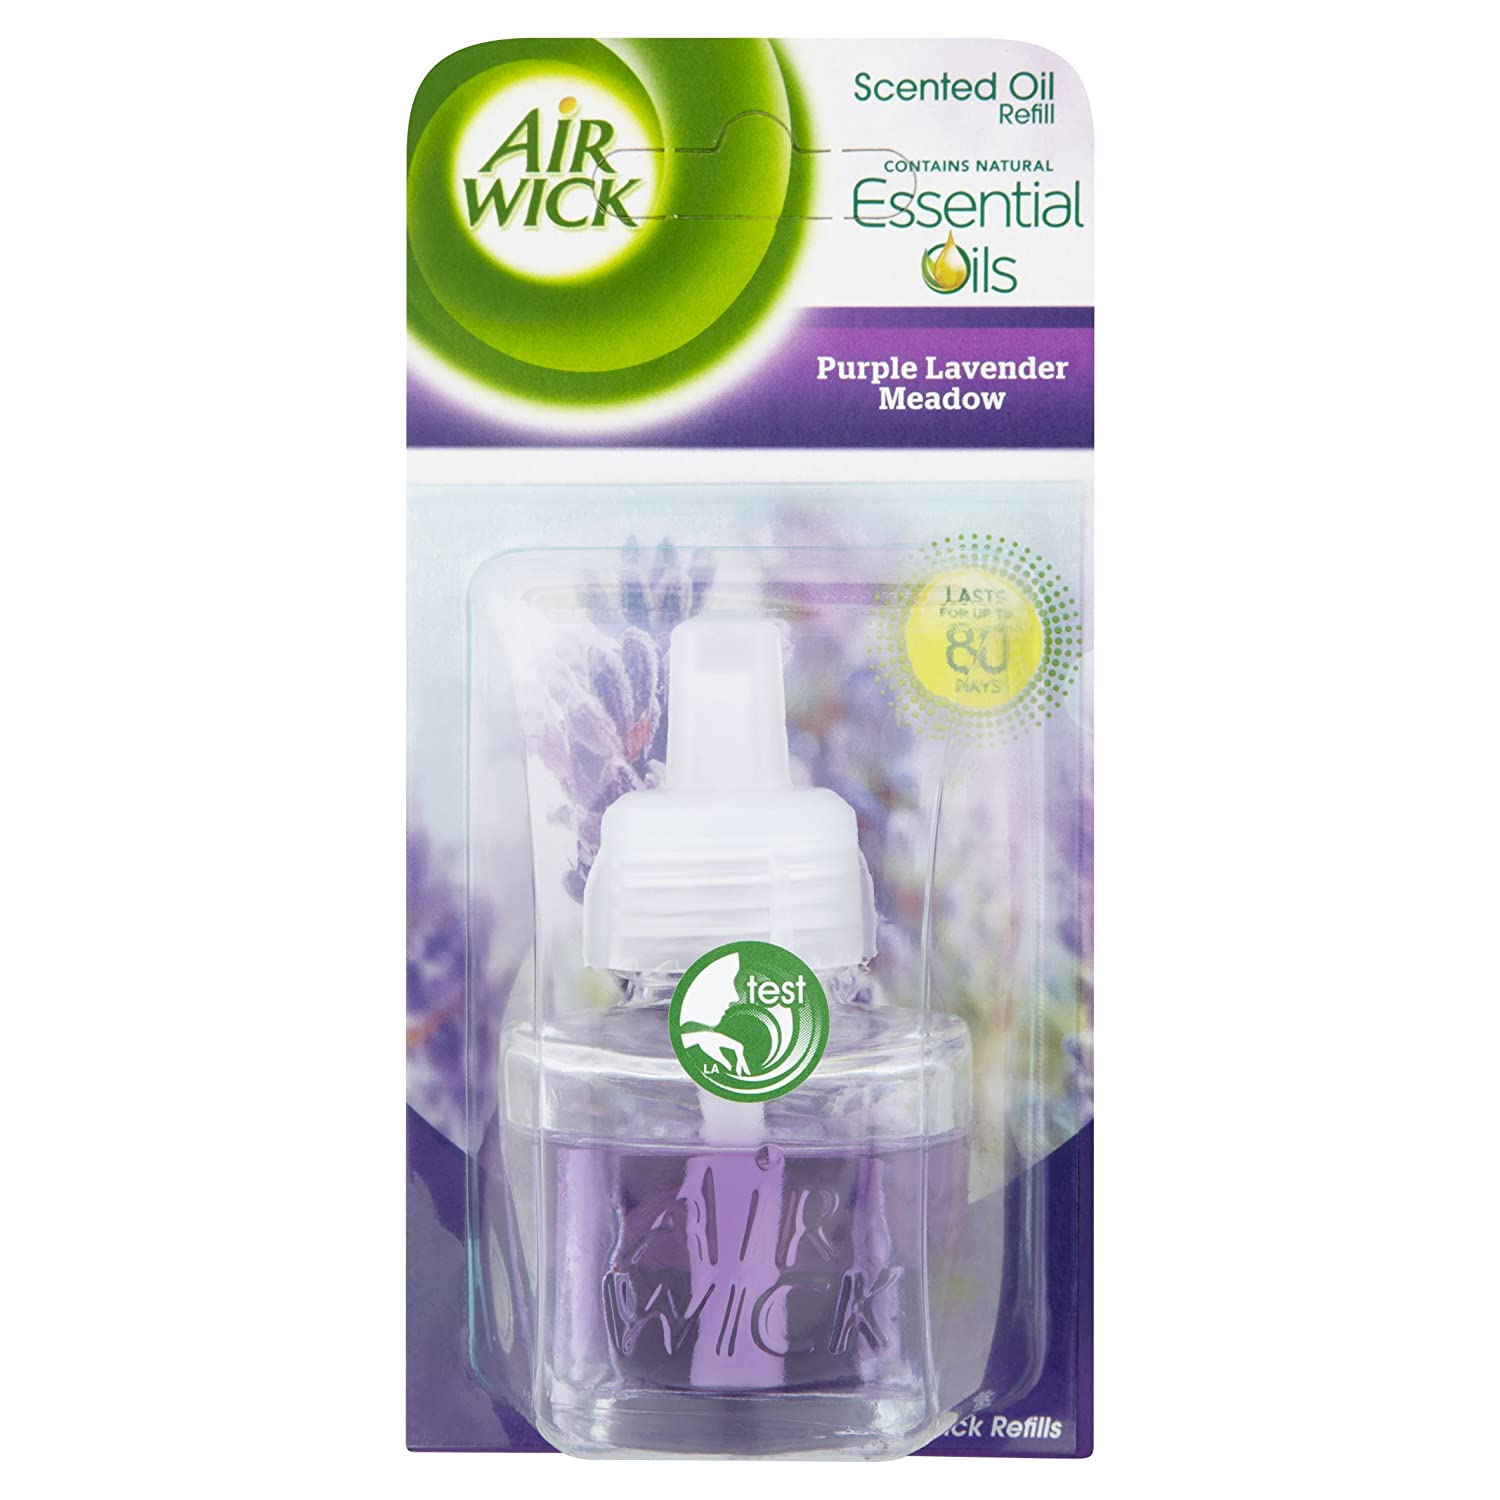 Air Wick Electrical Plug In Air Freshener Refill Crisp Linen and Lilac 17ml, Pack of 6 (Total 6 Refills)